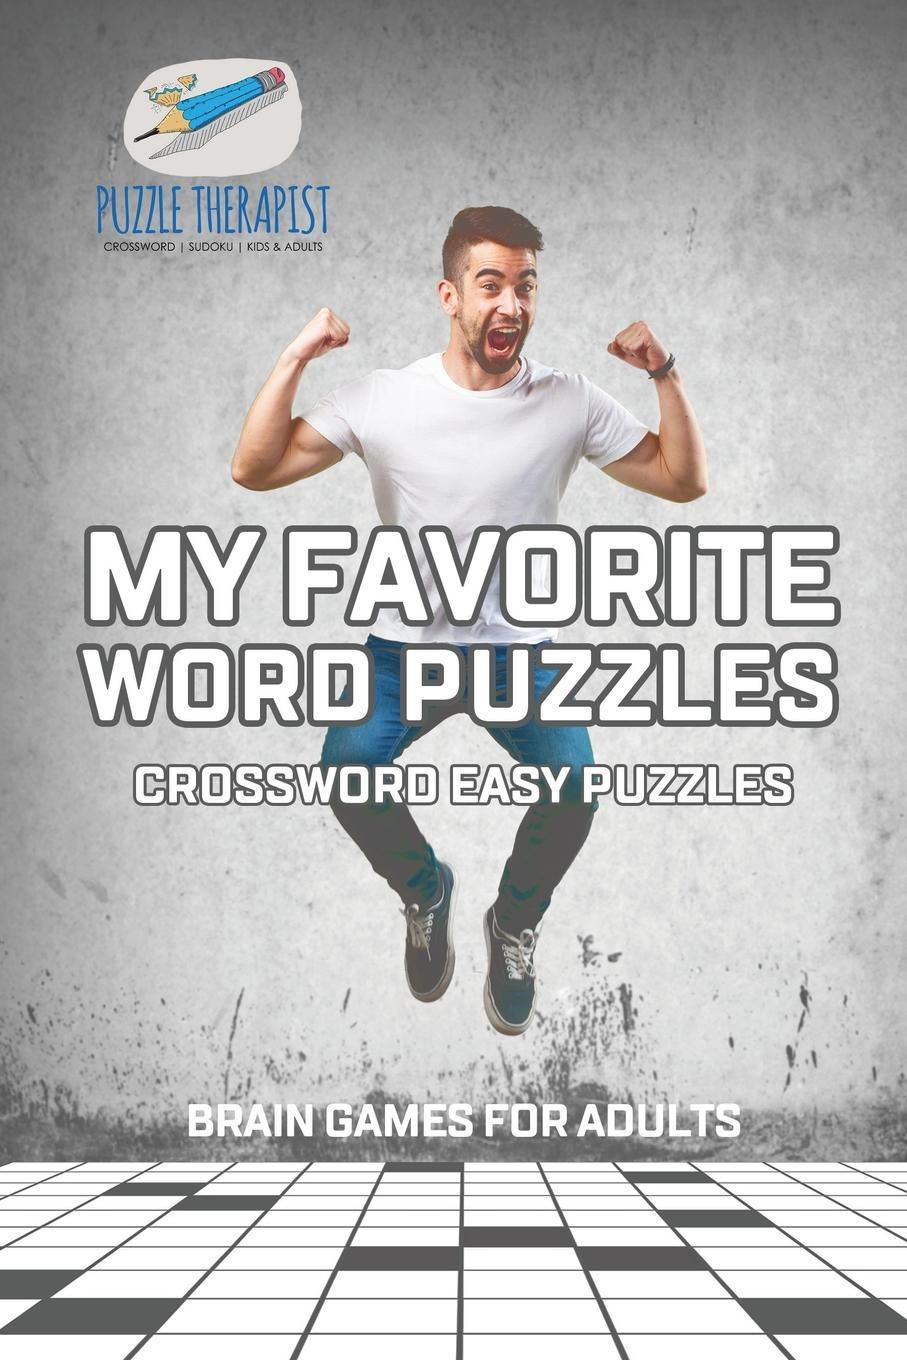 Puzzle Therapist My Favorite Word Puzzles . Crossword Easy Puzzles . Brain Games for Adults паззл vintage puzzles